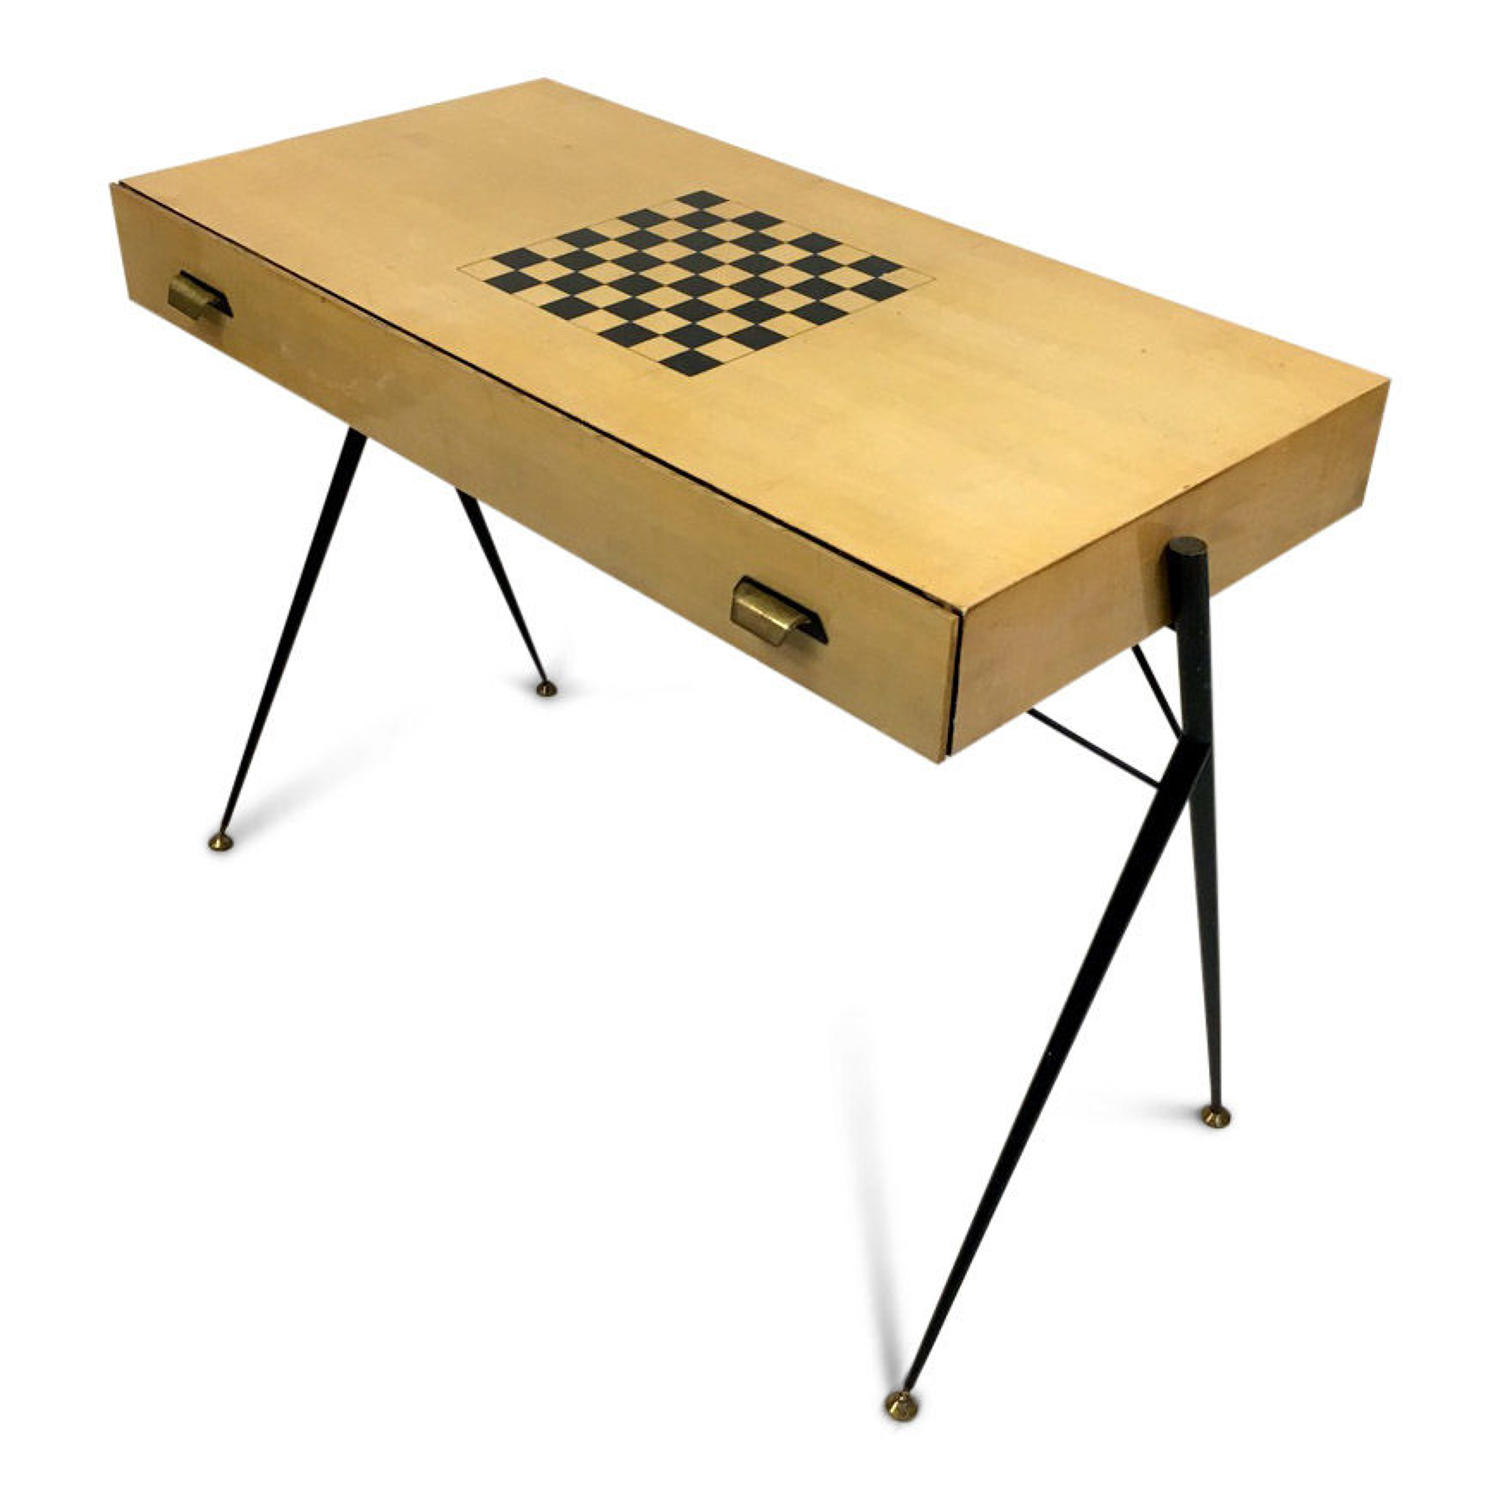 1960s Italian desk with chess board